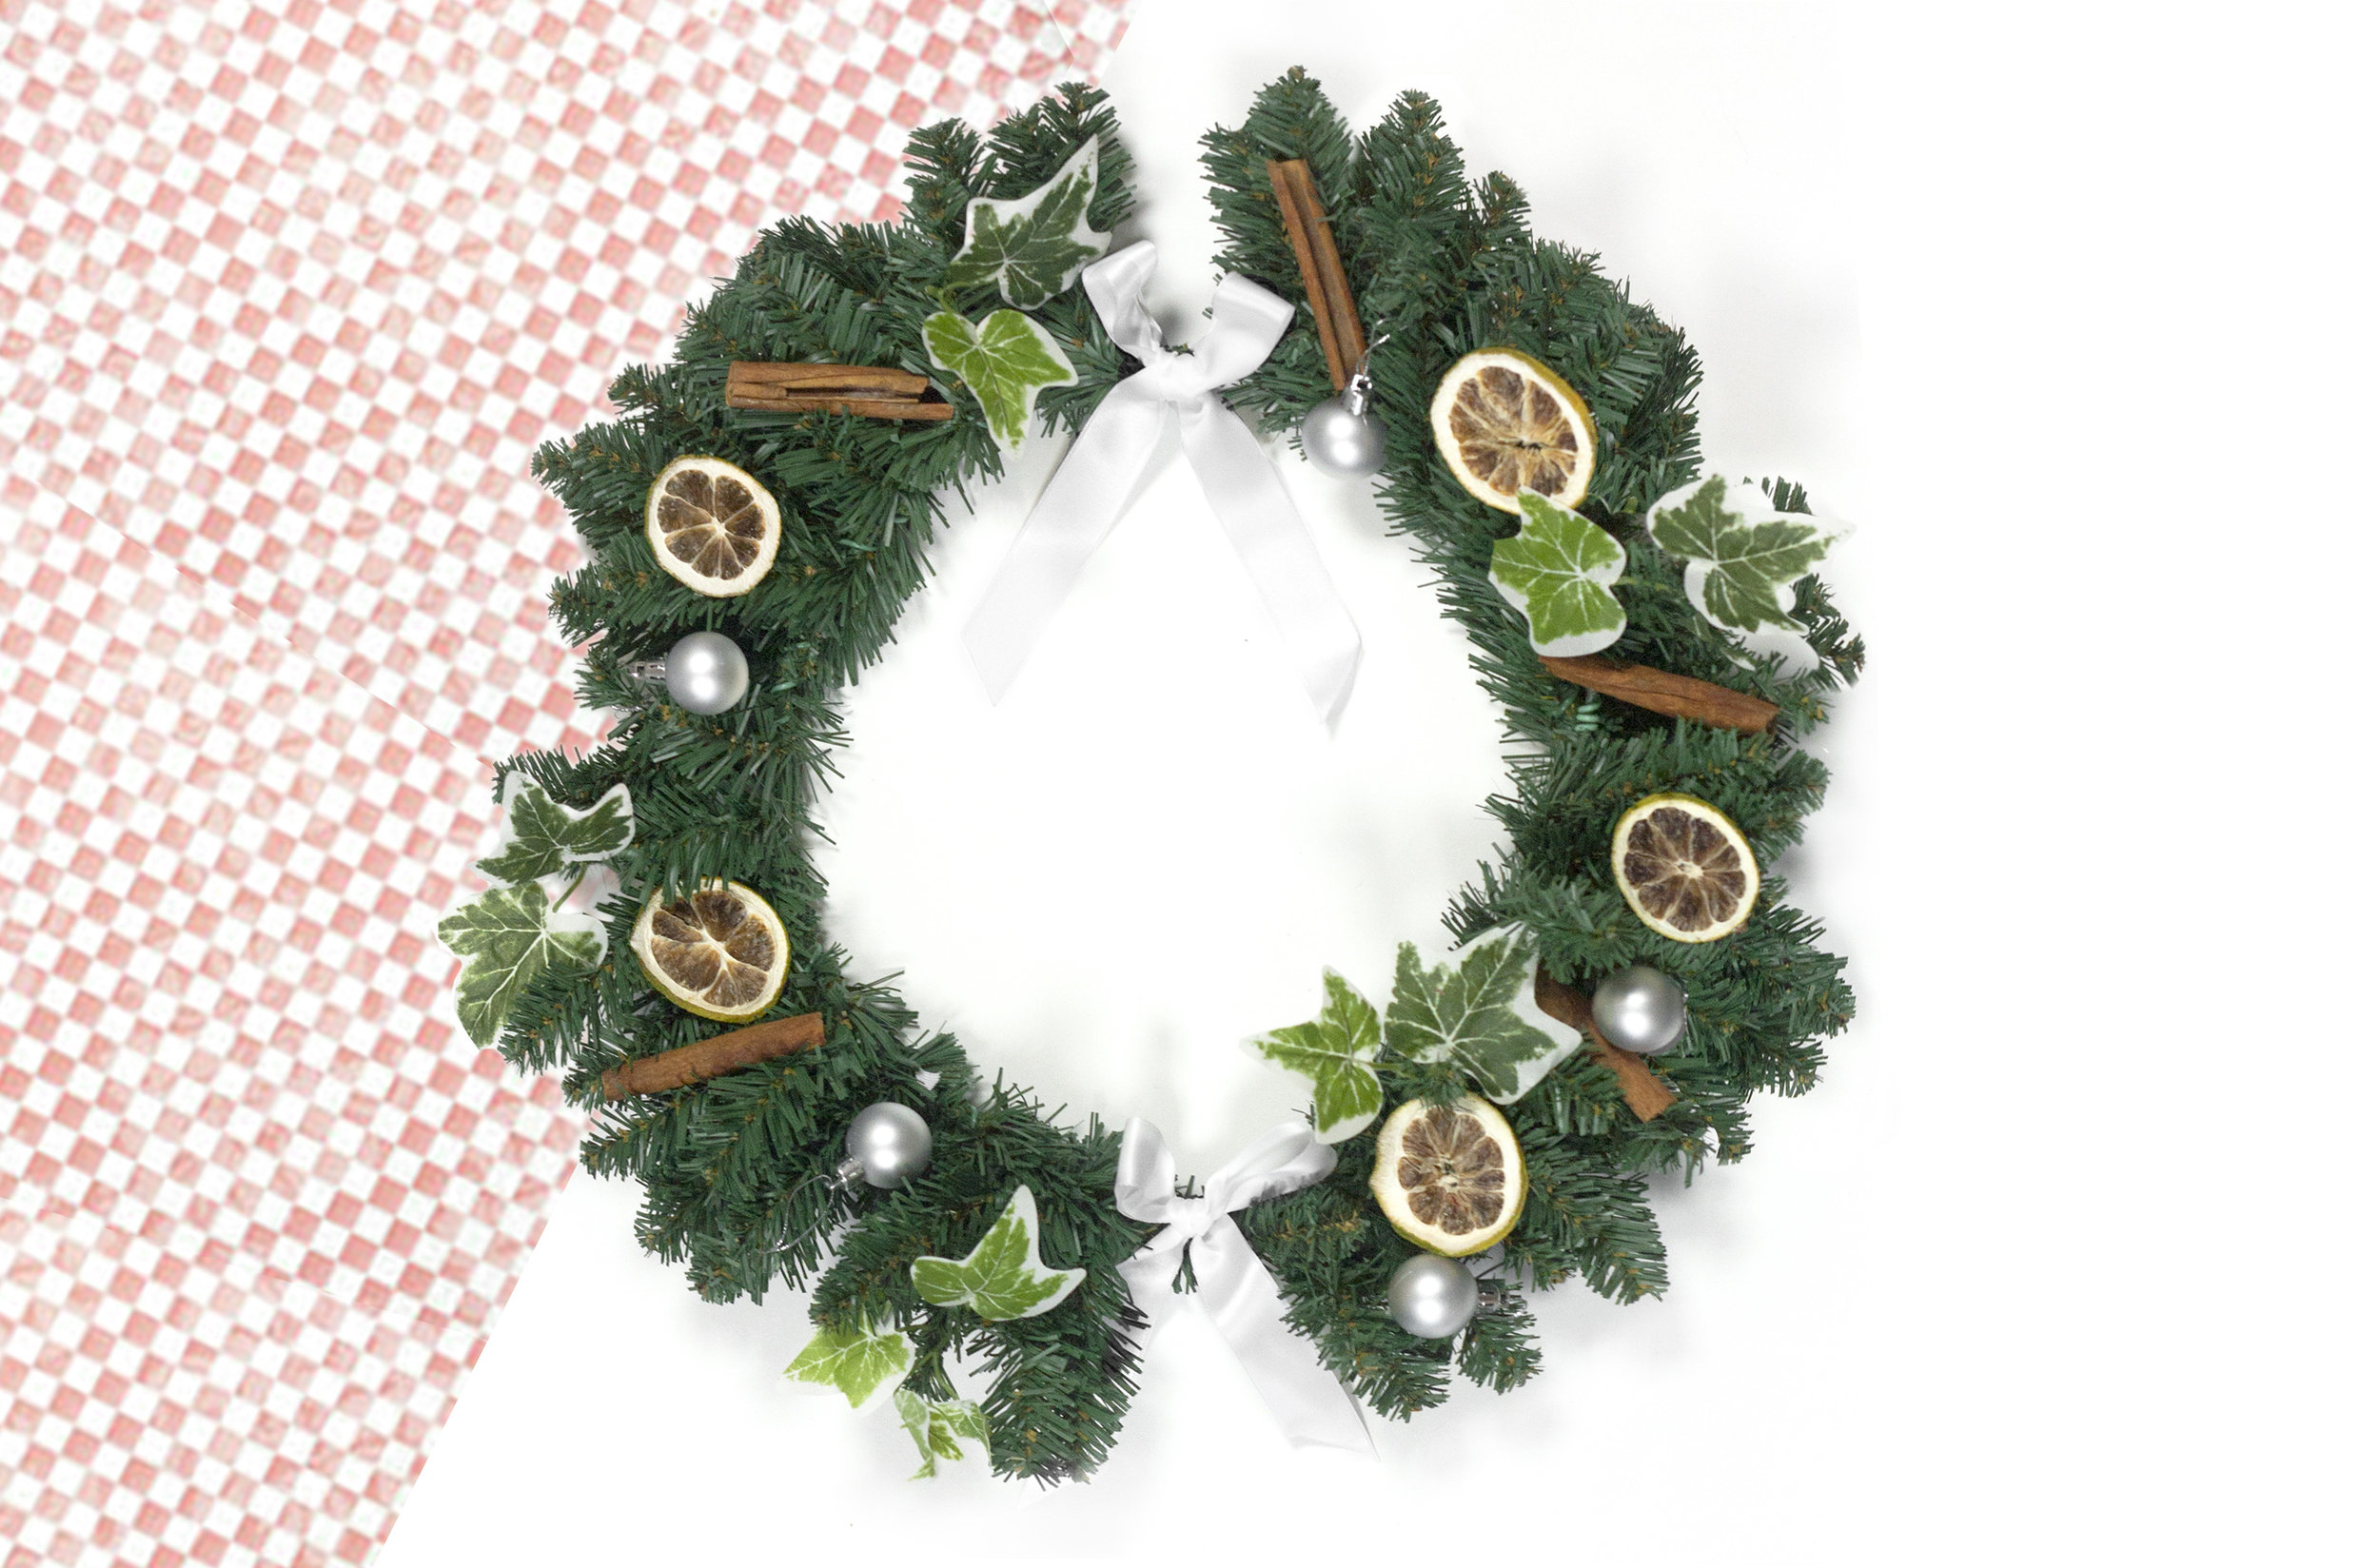 Wreath Making 1 Cinn Orange Ivy red.jpg